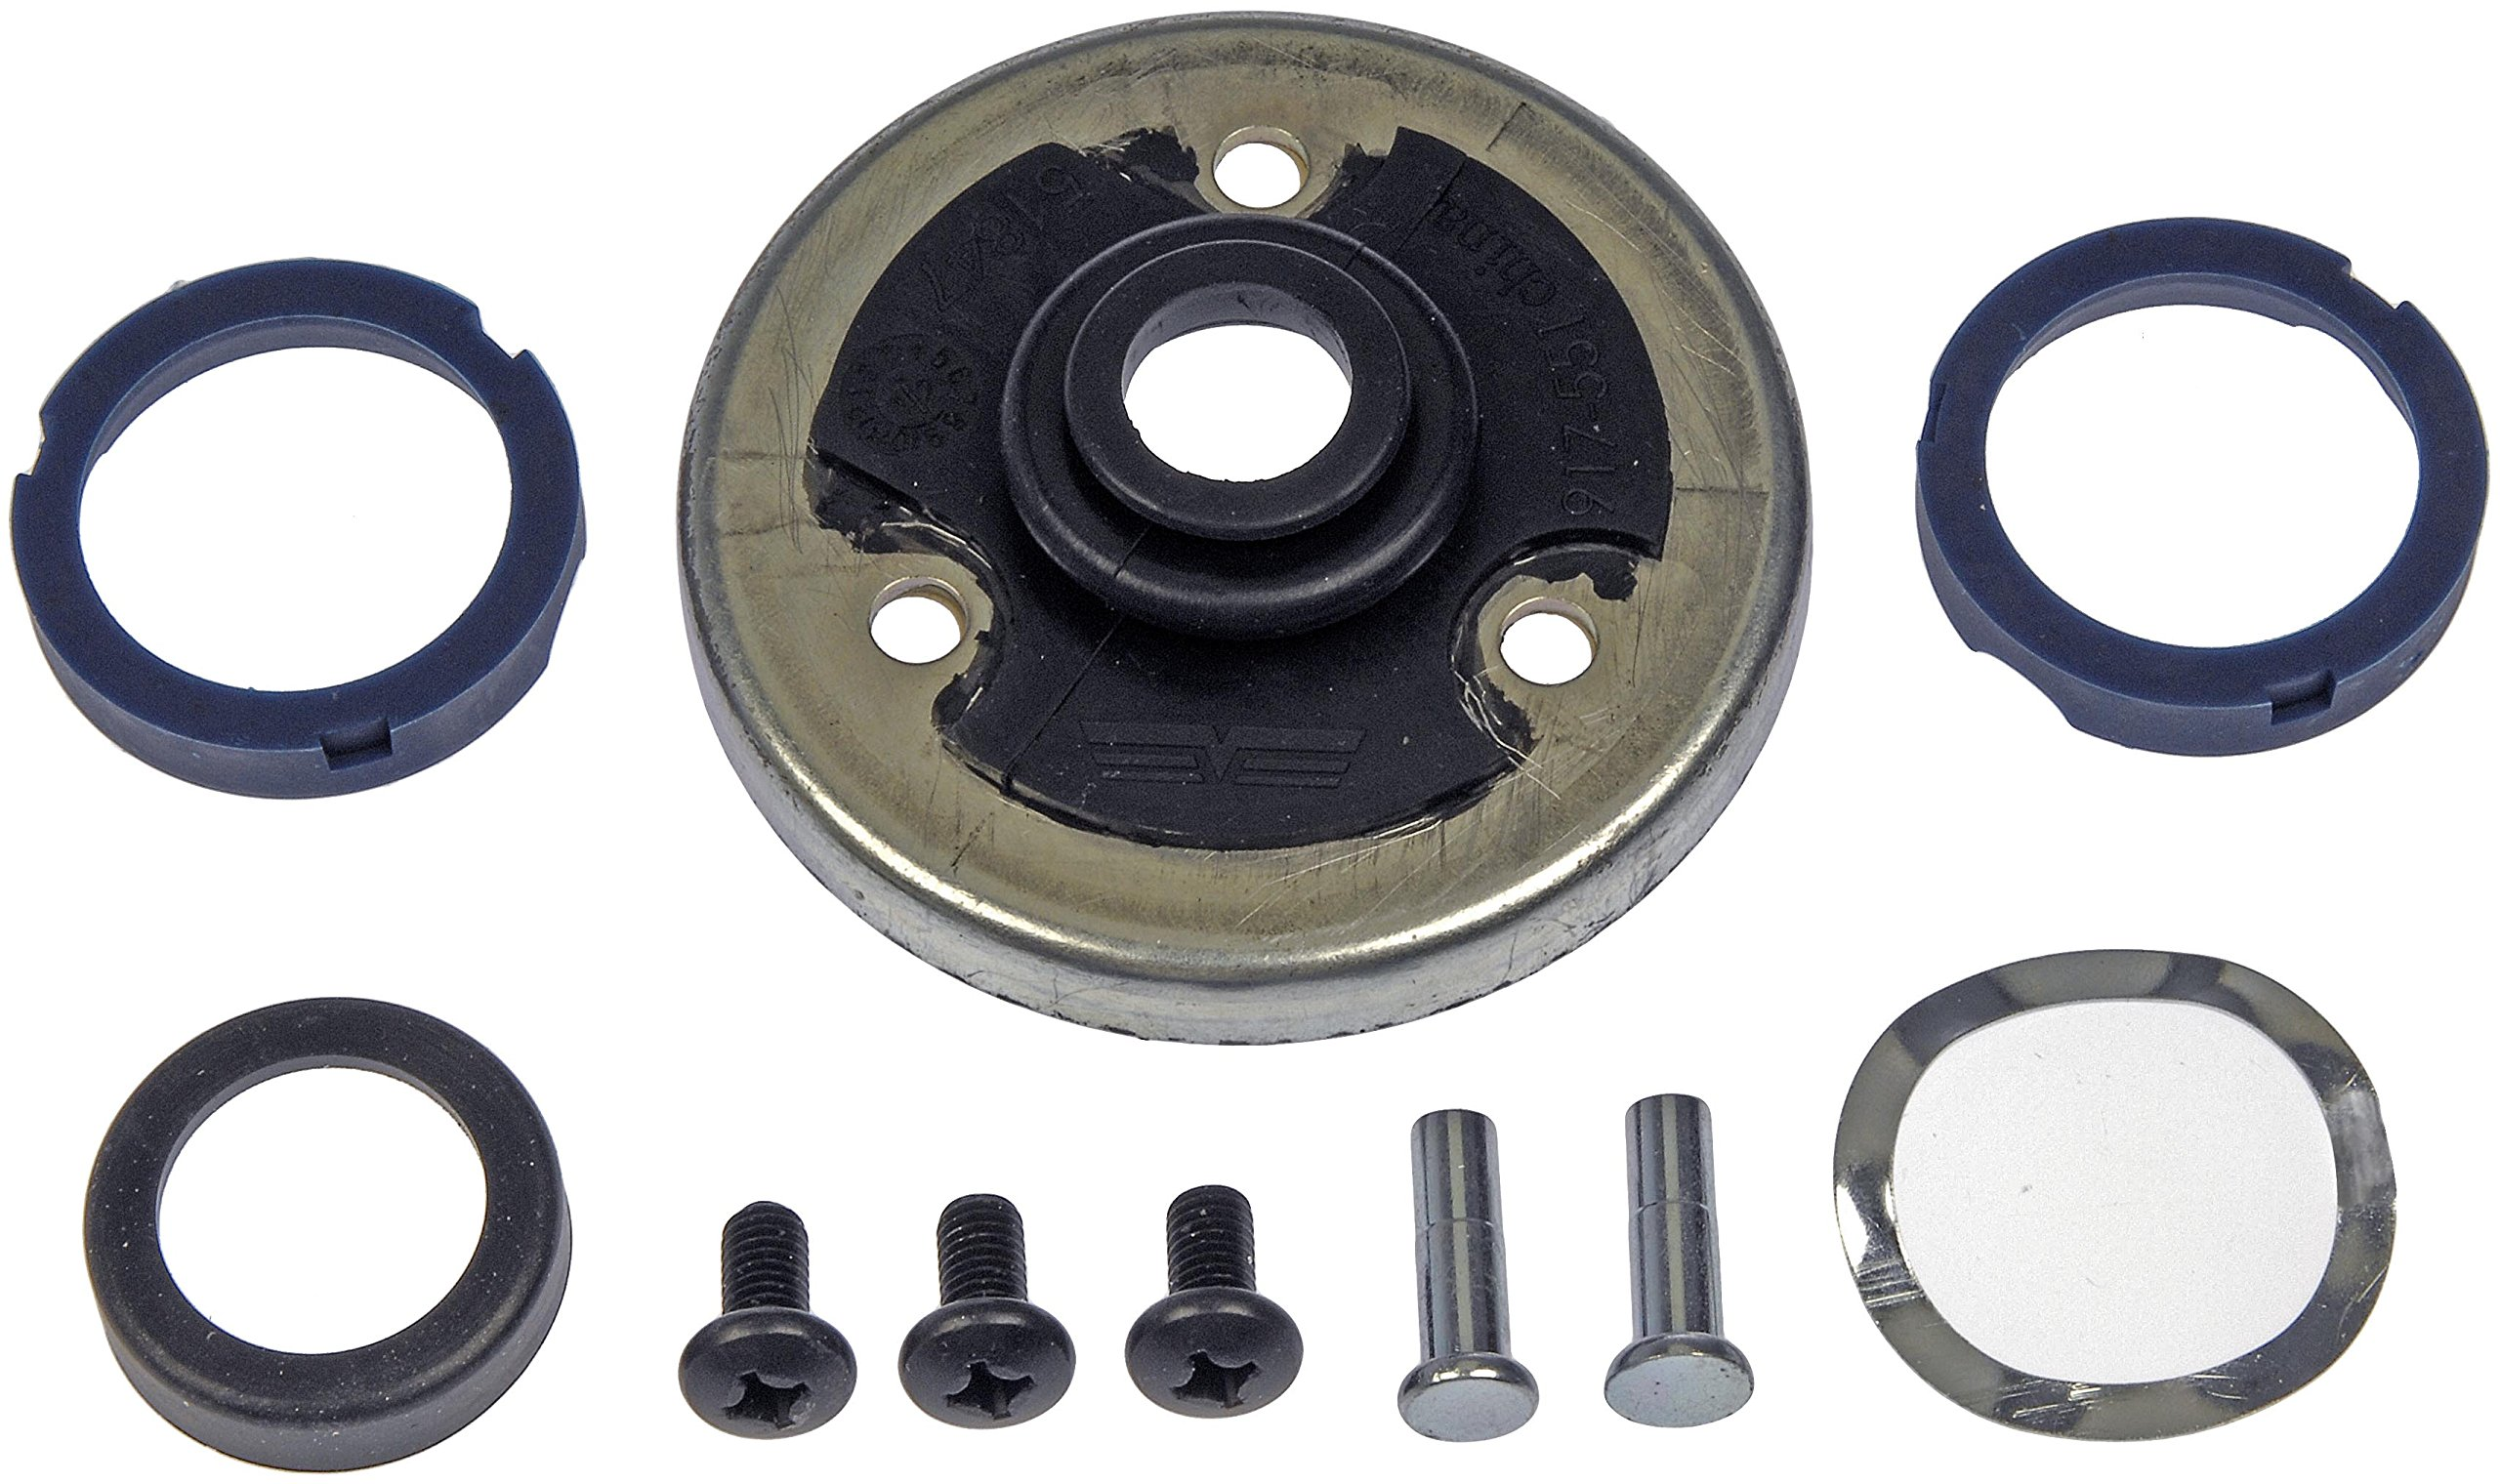 Dorman 917-551 Shifter Rebuild Kit by Dorman